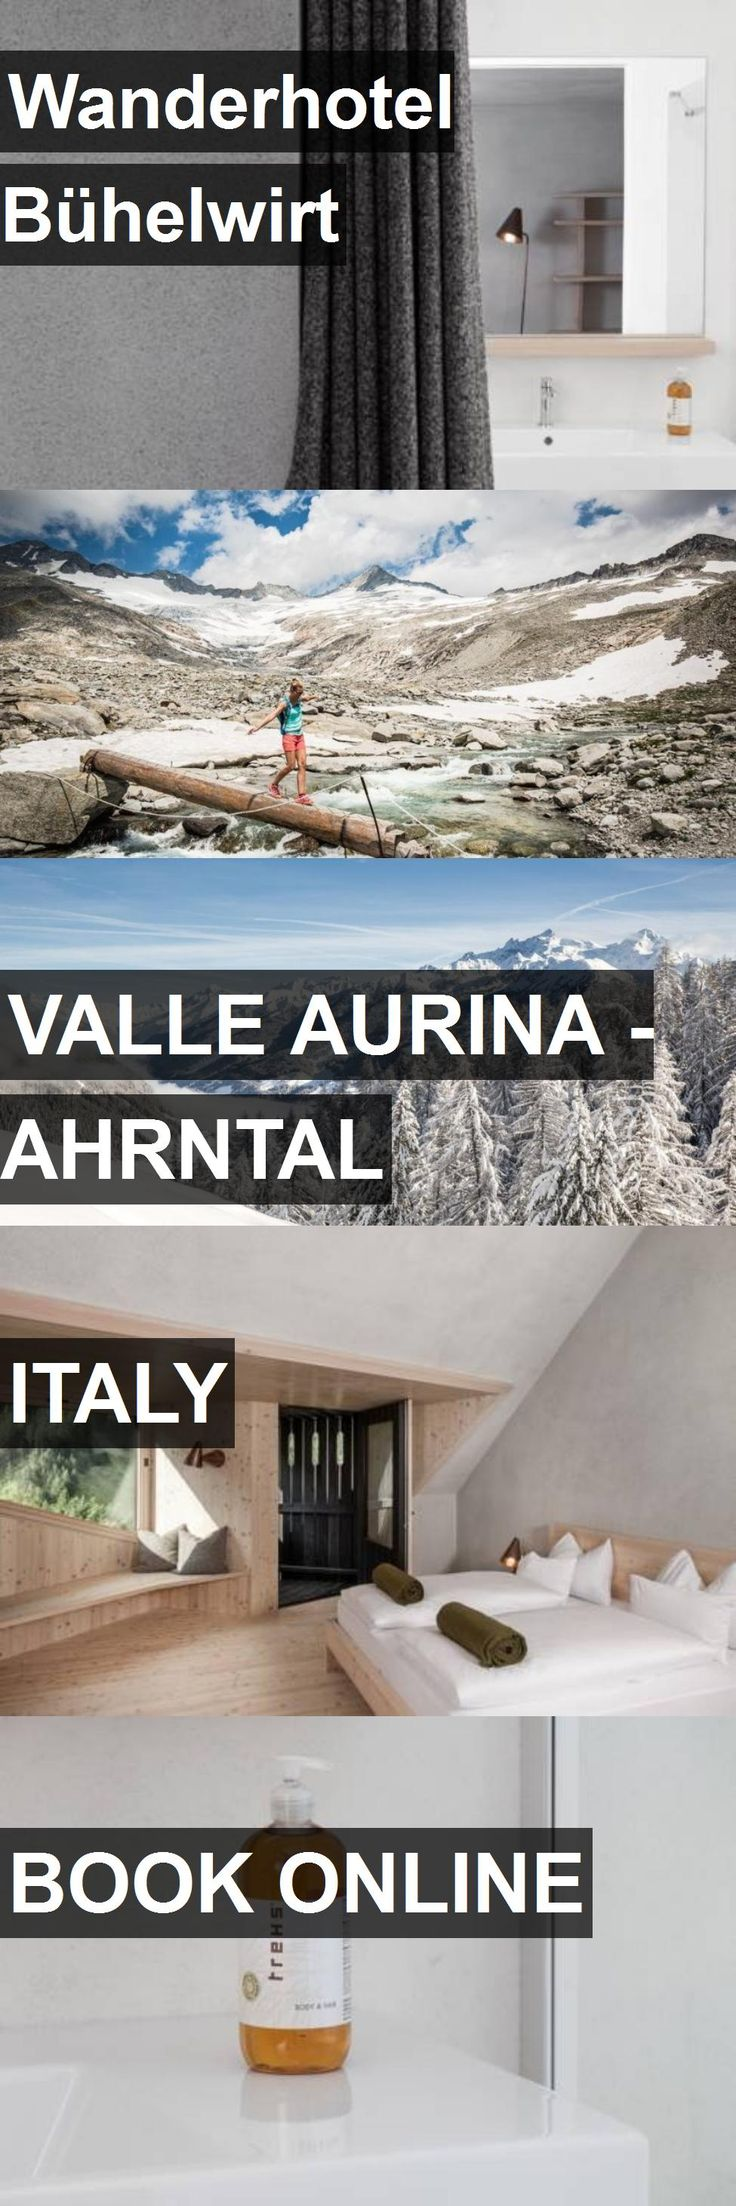 Wanderhotel Bühelwirt in Valle Aurina - Ahrntal, Italy. For more information, photos, reviews and best prices please follow the link. #Italy #ValleAurina-Ahrntal #travel #vacation #hotel